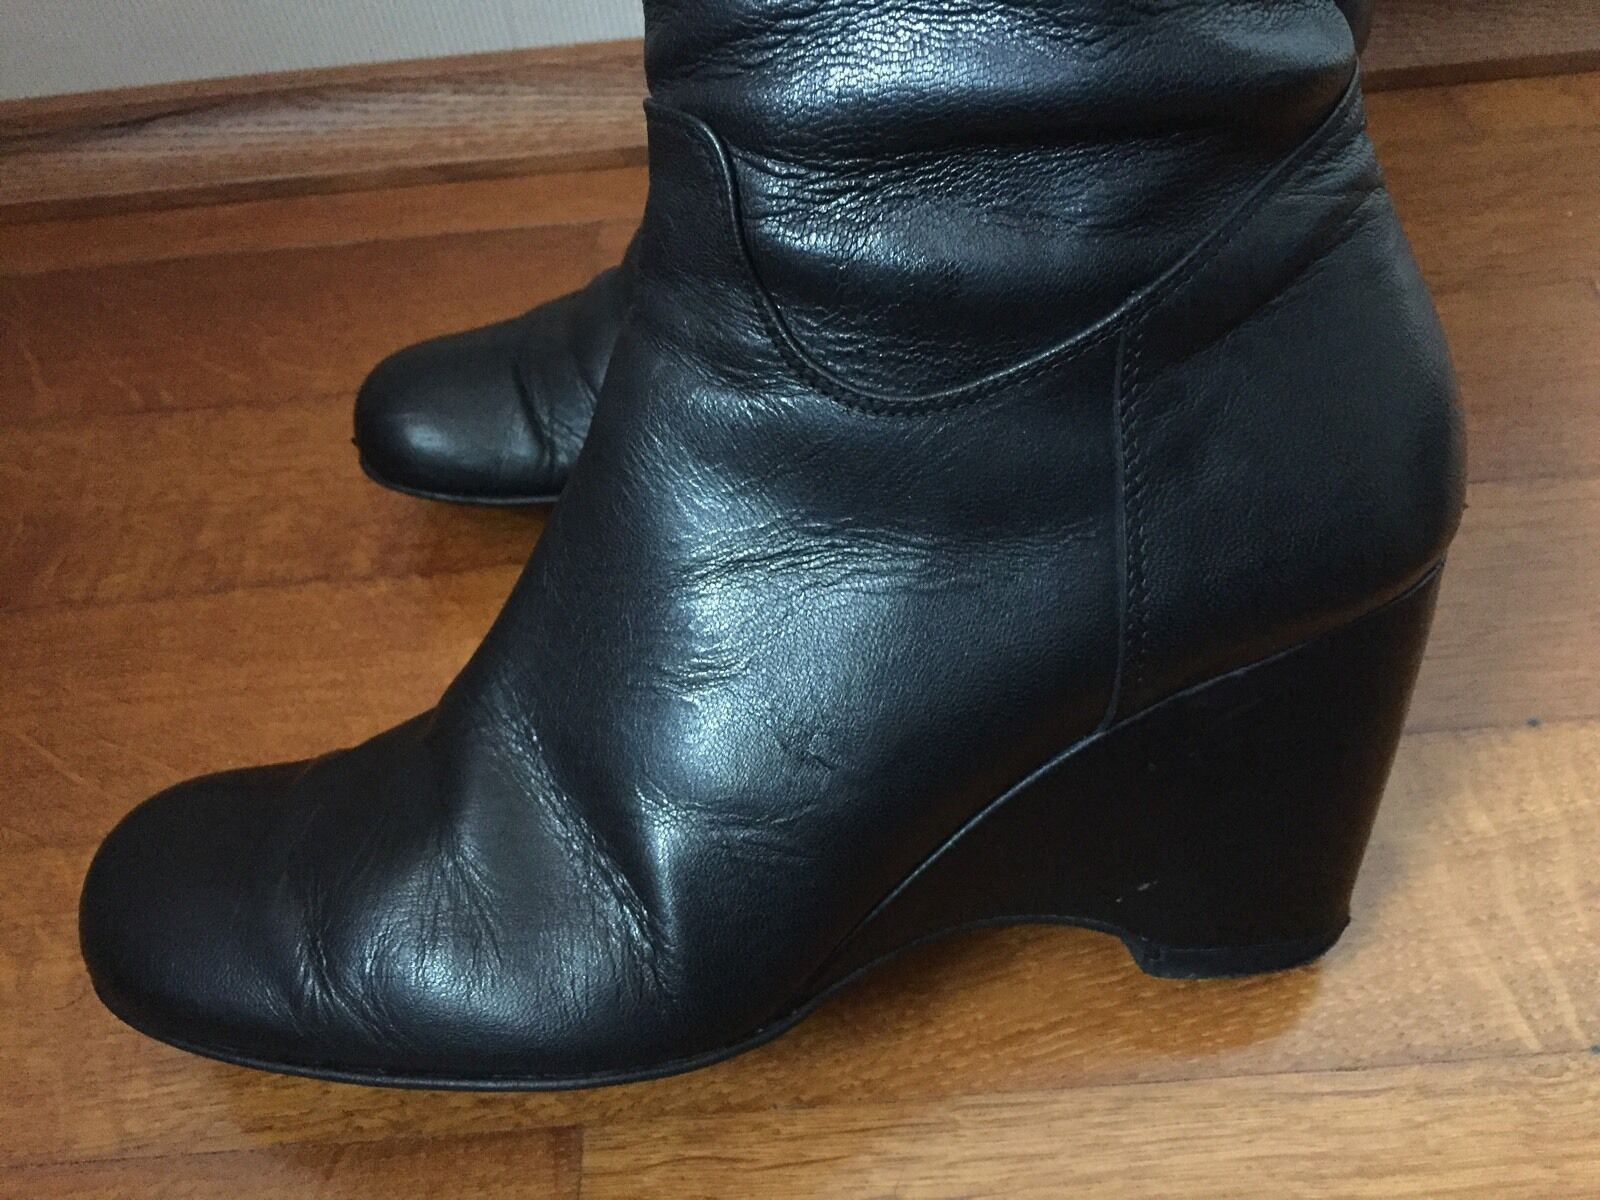 Stiefel Wedges Blogger Riccardo Cartillone 38 UK5 Blogger Wedges Leder Leather Keilabsatz 0addf2